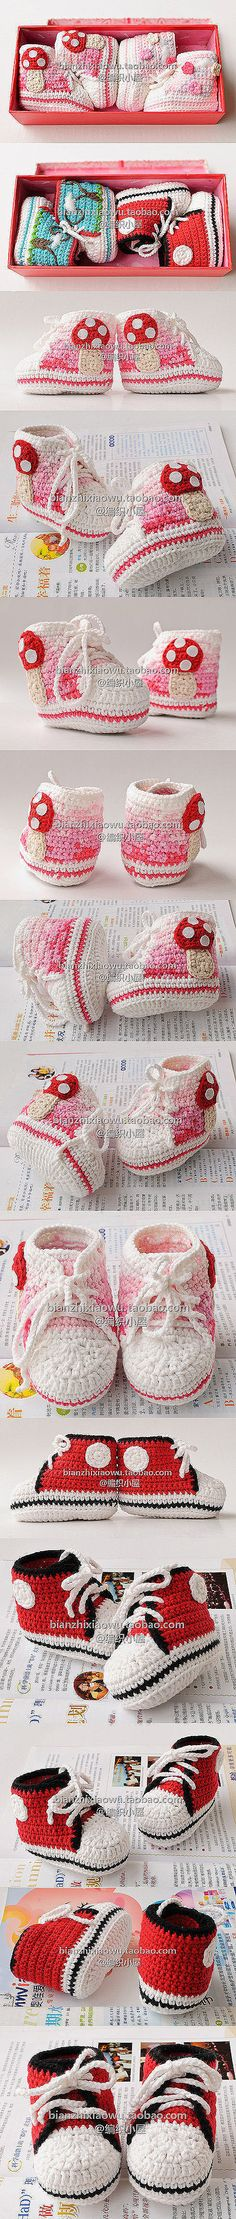 "cute booties inspiration and similar PDF crochet pattern ""free!"""